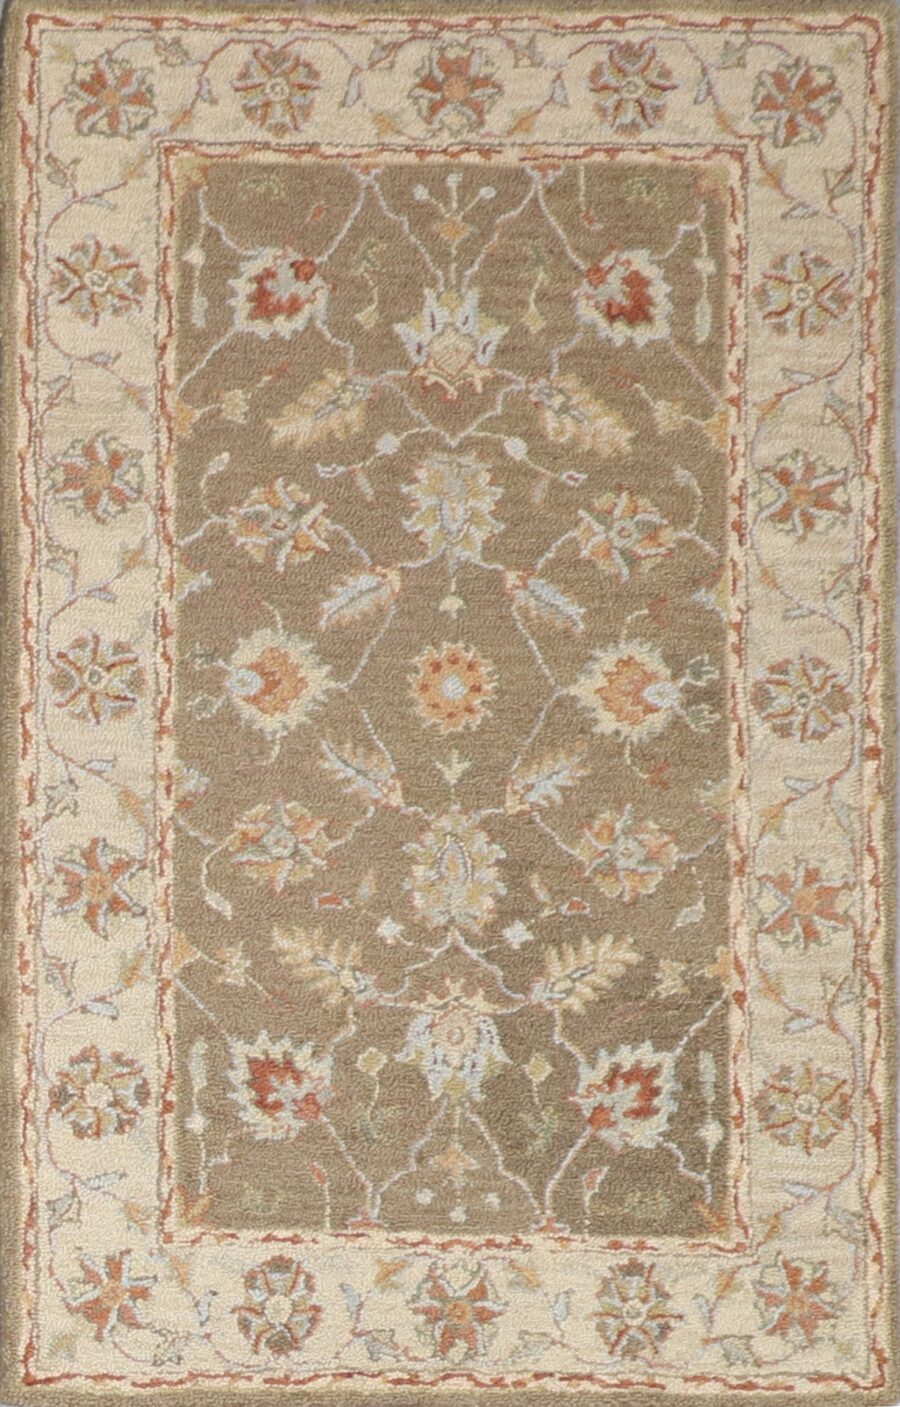 """3'6""""x5'6"""" Decorative Brown Hook Wool Hand-Tufted Rug - Direct Rug Import   Rugs in Chicago, Indiana,South Bend,Granger"""